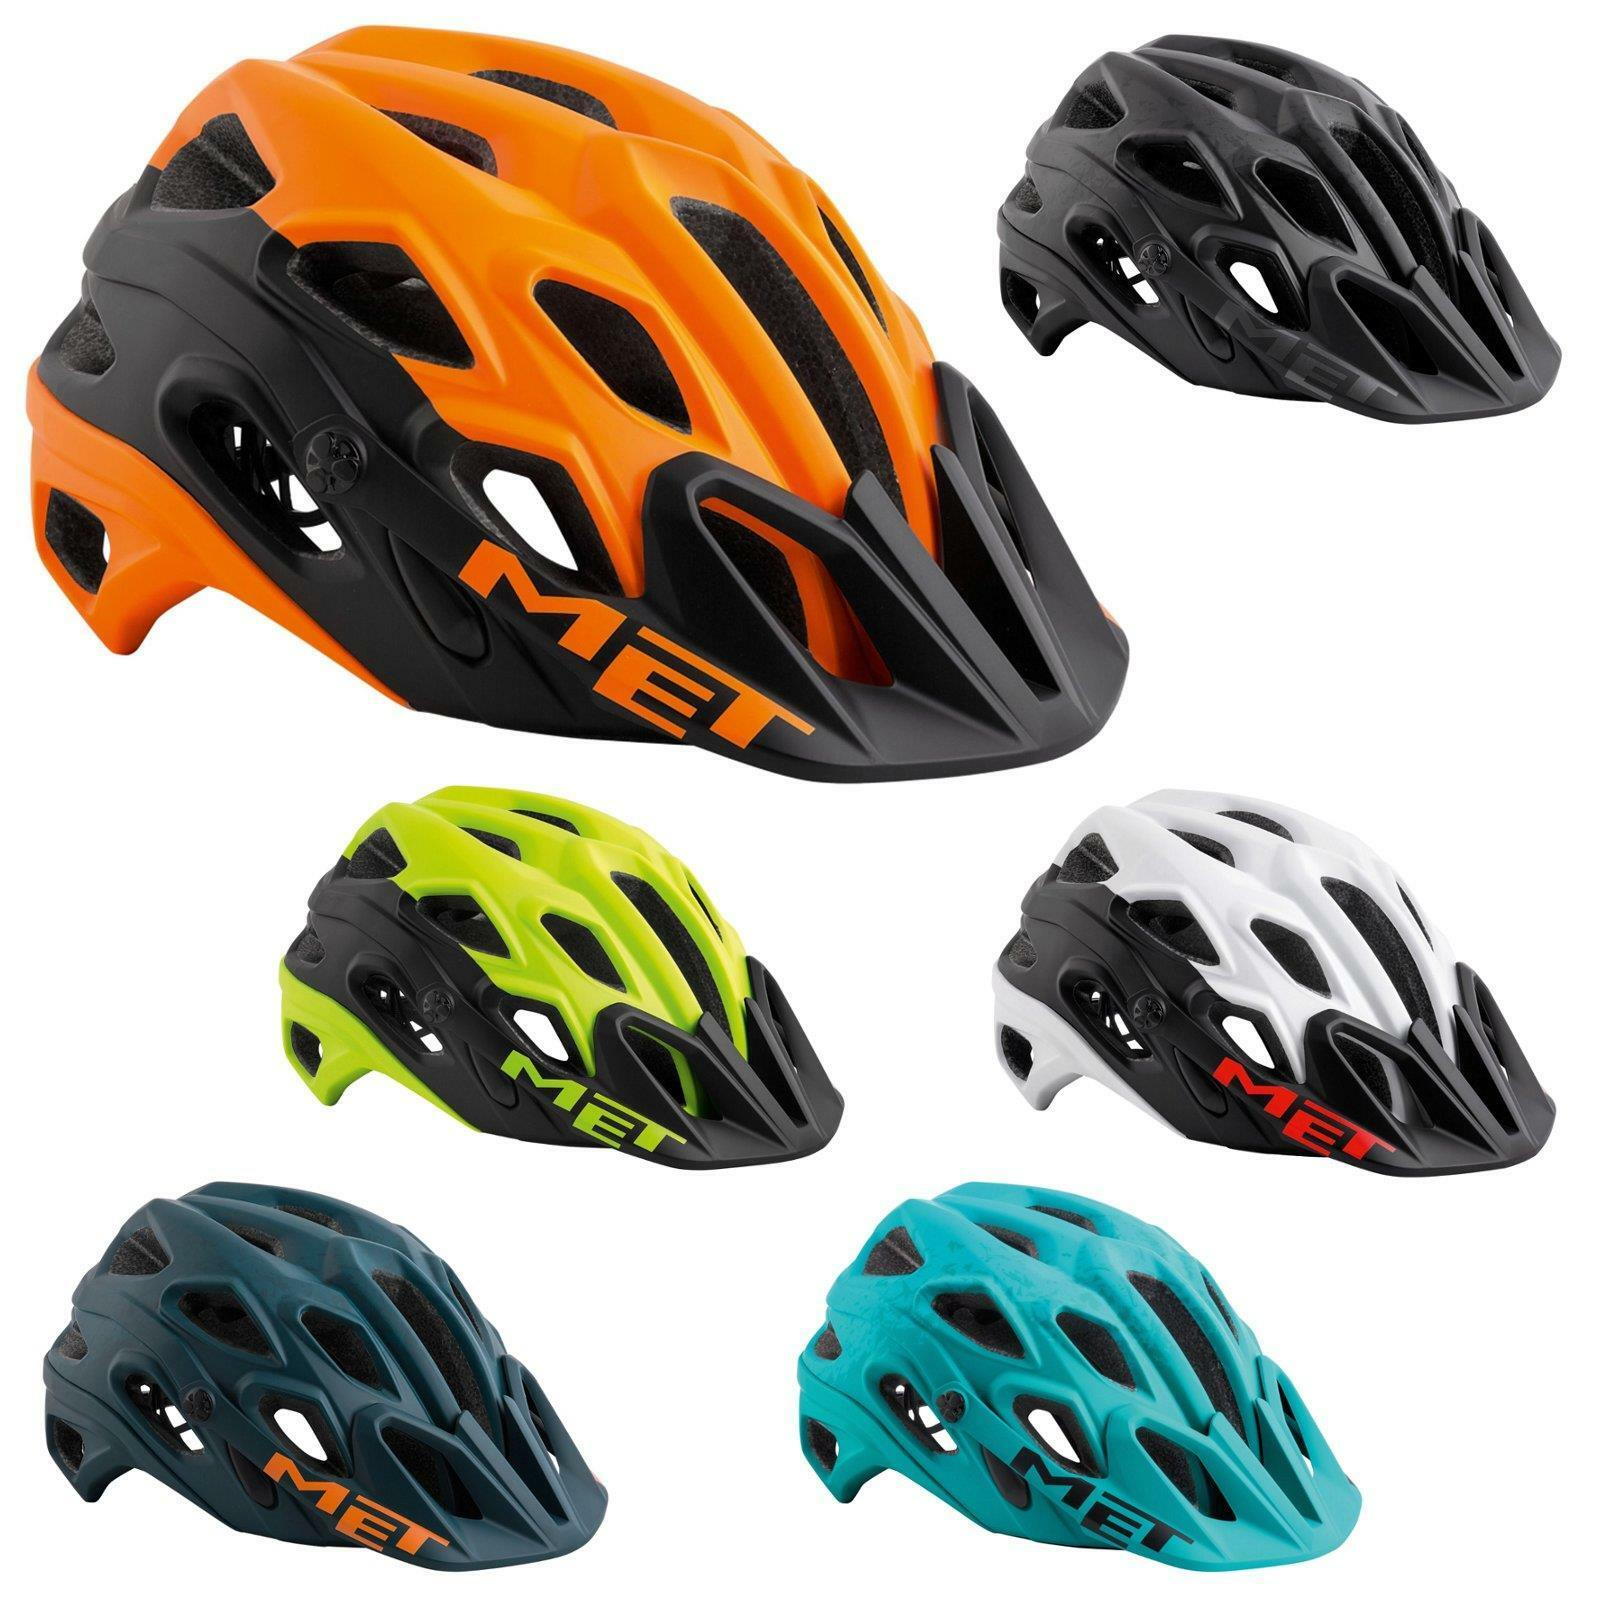 Met Lupo Mountain Bike Bicycle Helmet lumièreweight All Mountain XC Cross Vented Comfort